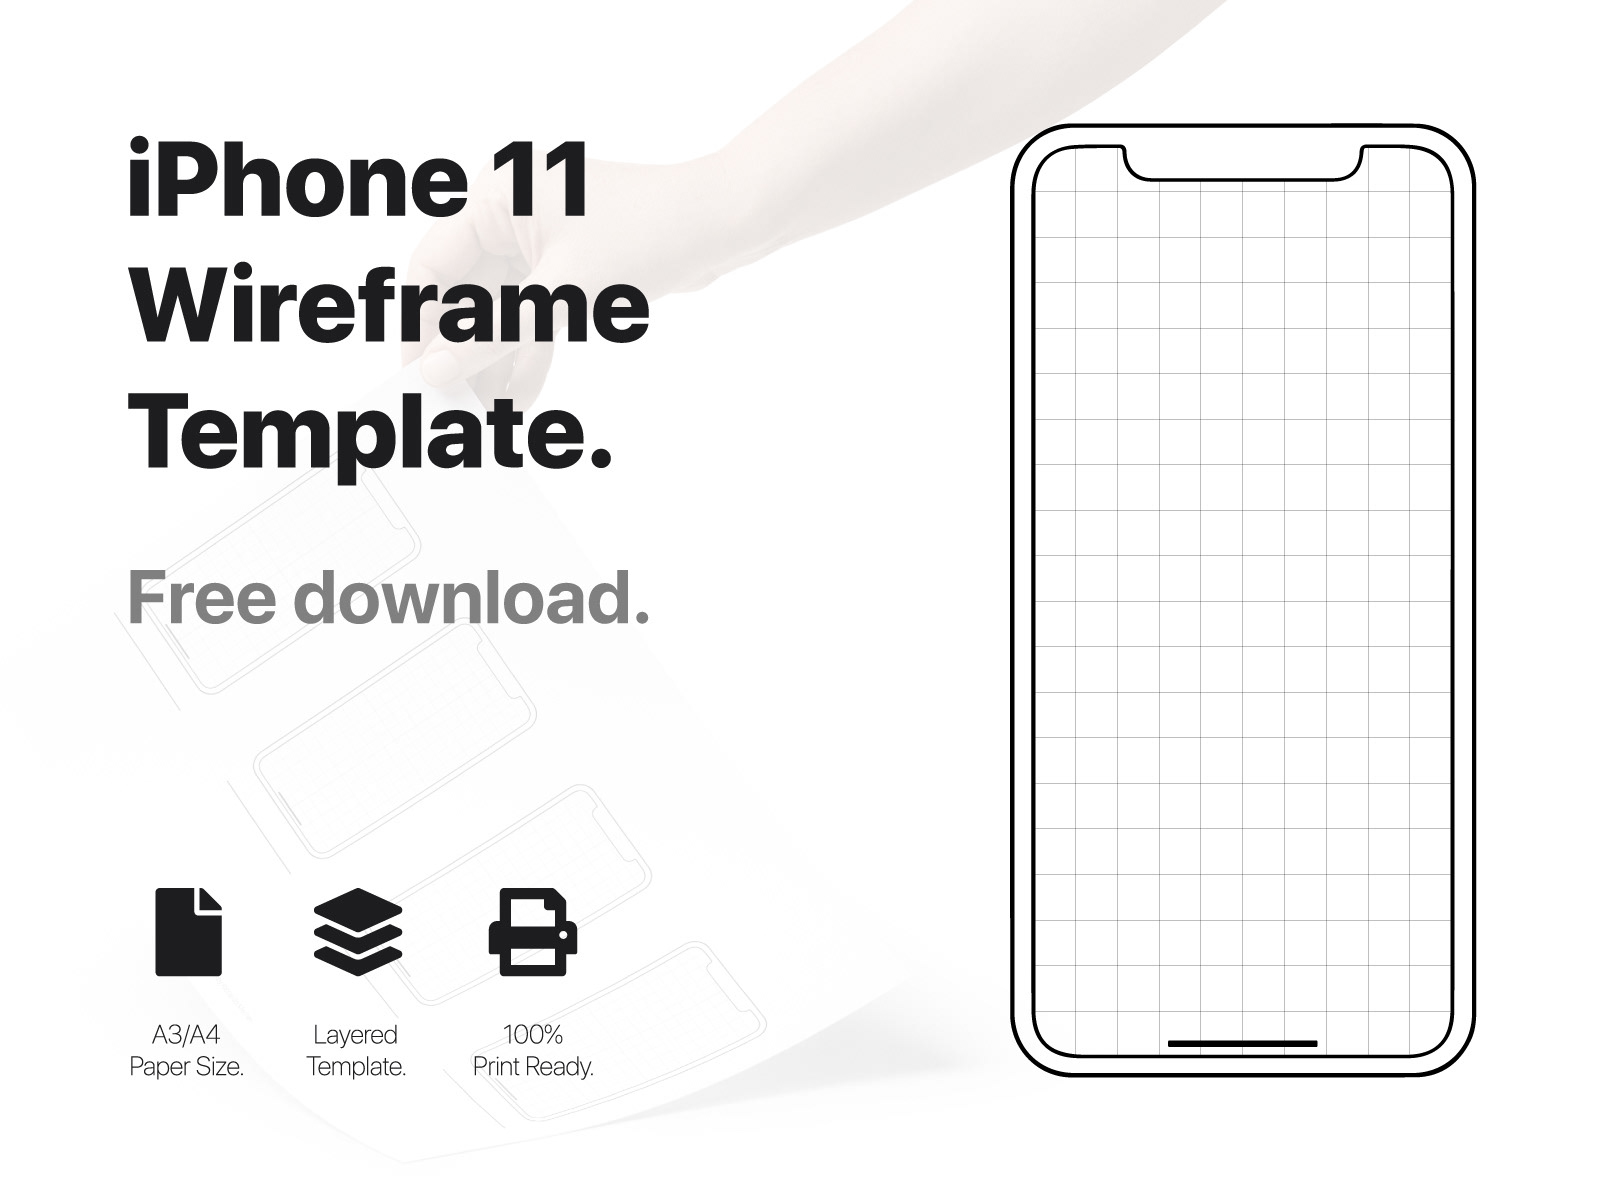 Iphone 11 Wireframe Projects Photos Videos Logos Illustrations And Branding On Behance